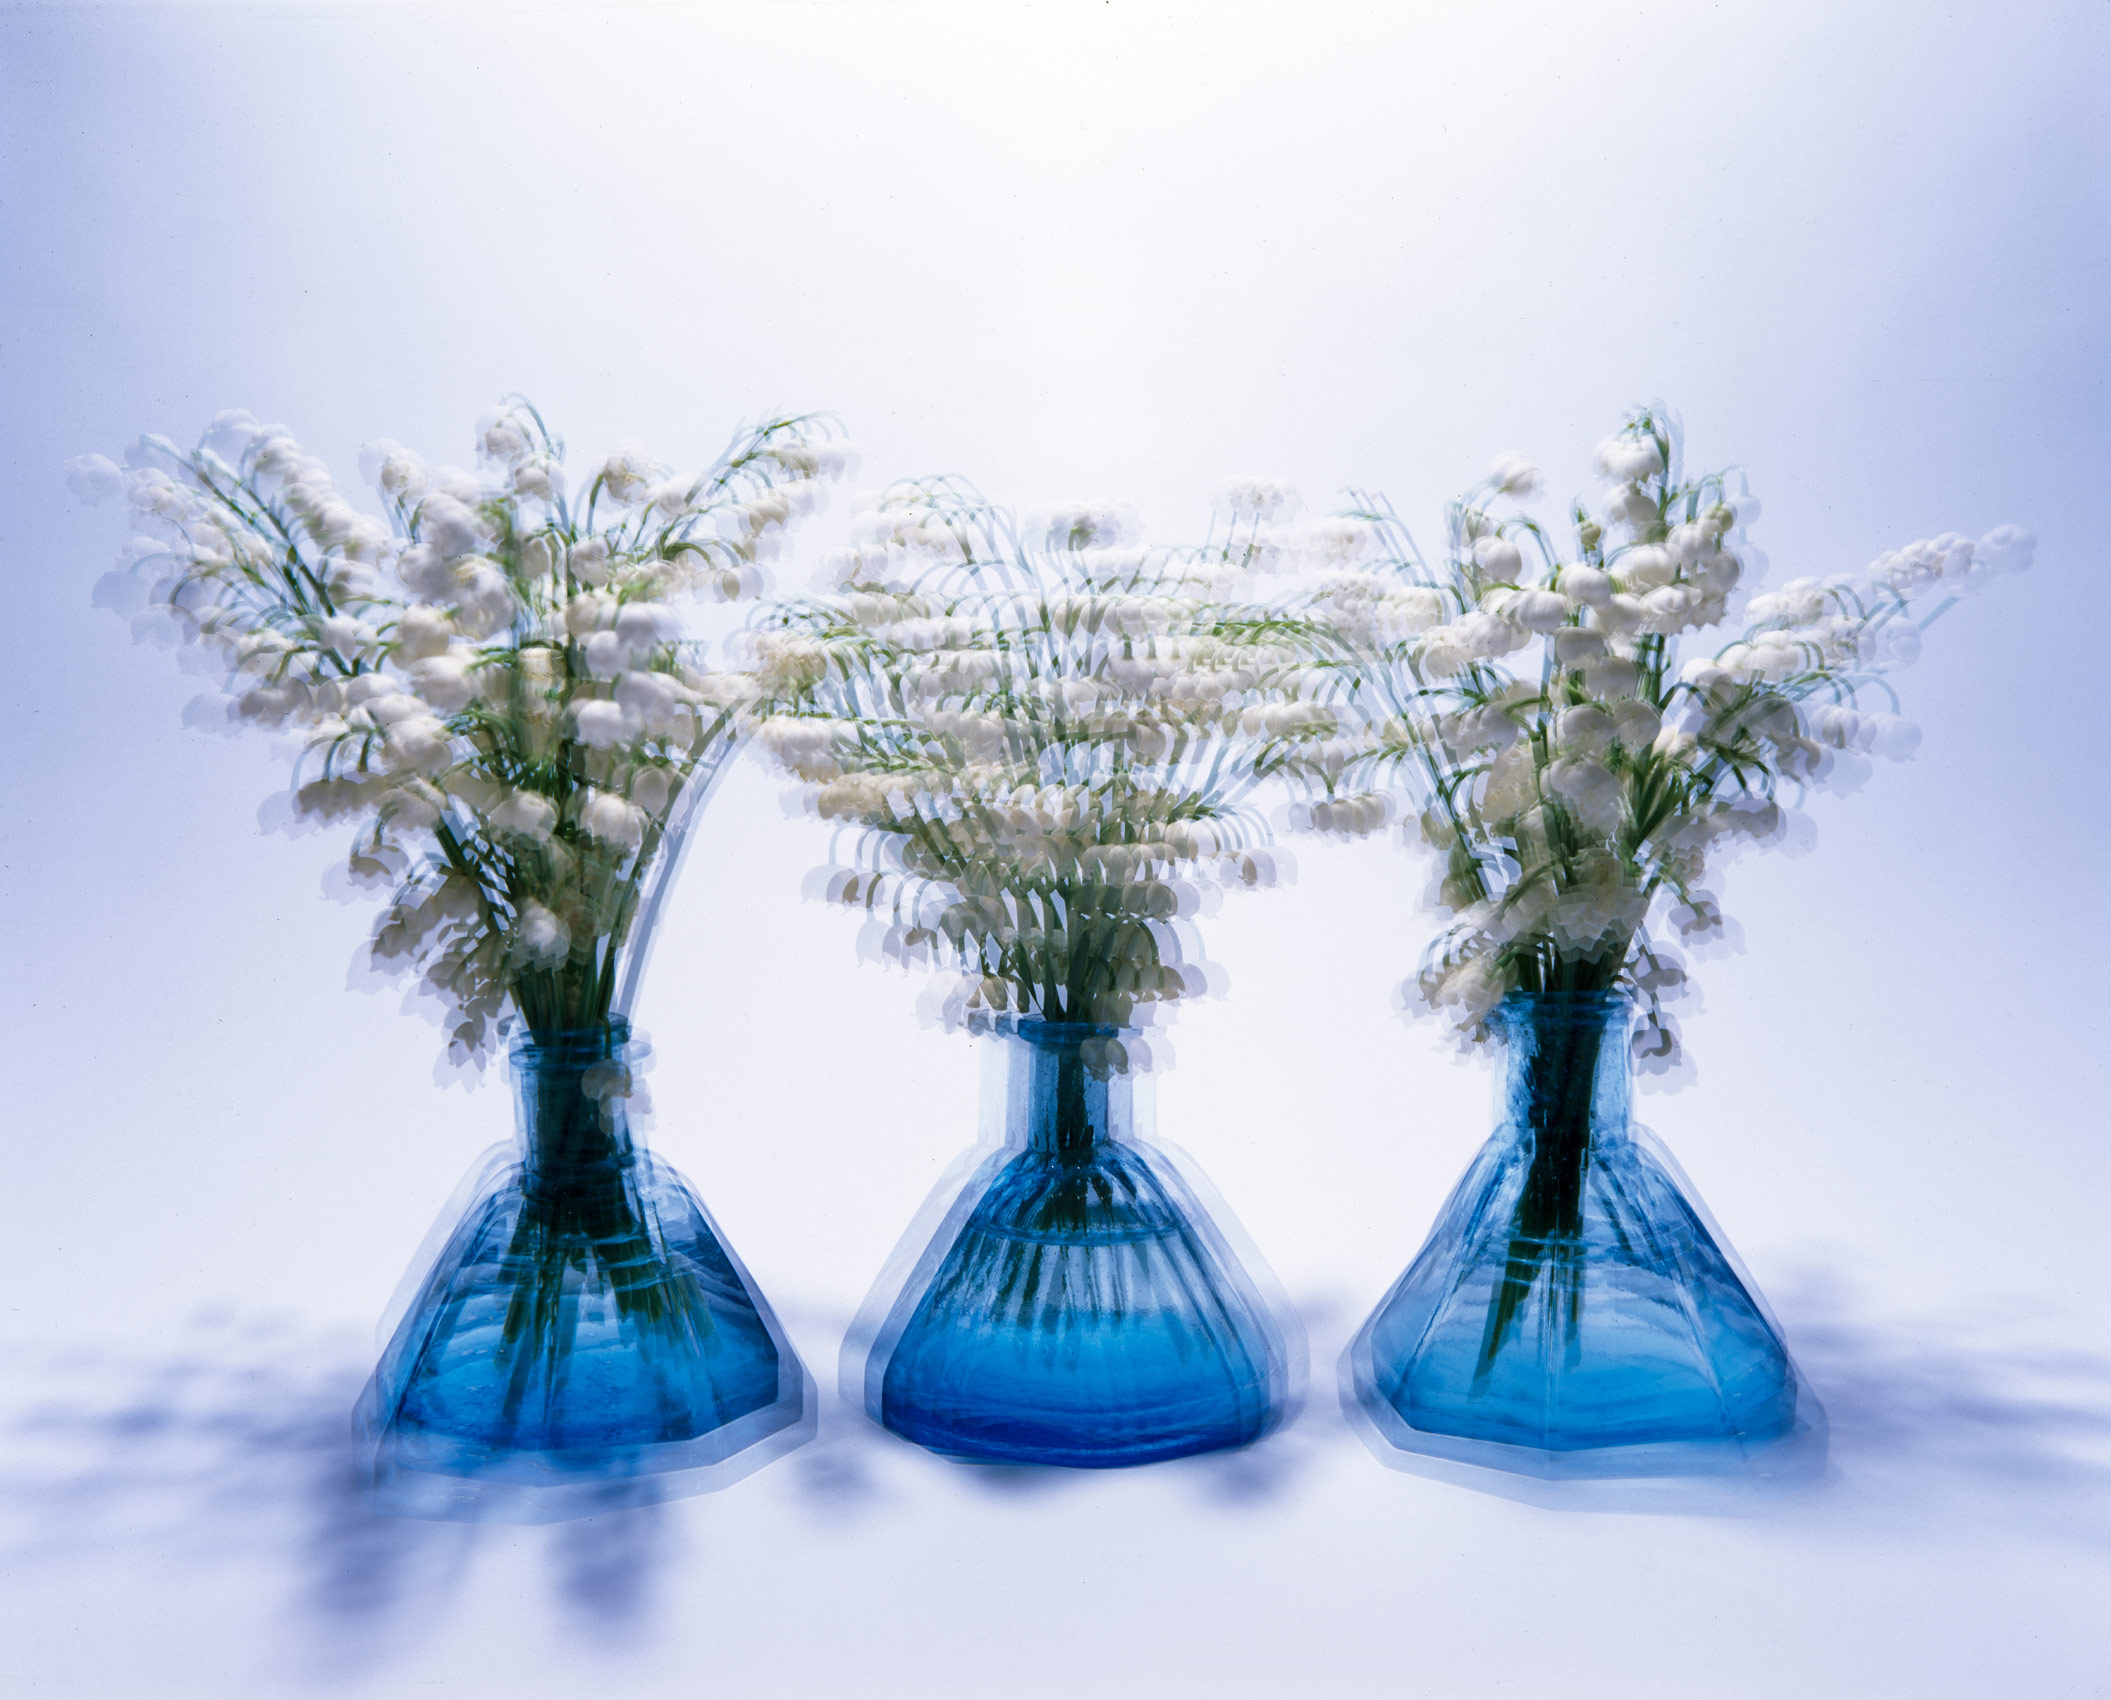 Flowers in Blue Ink Bottles